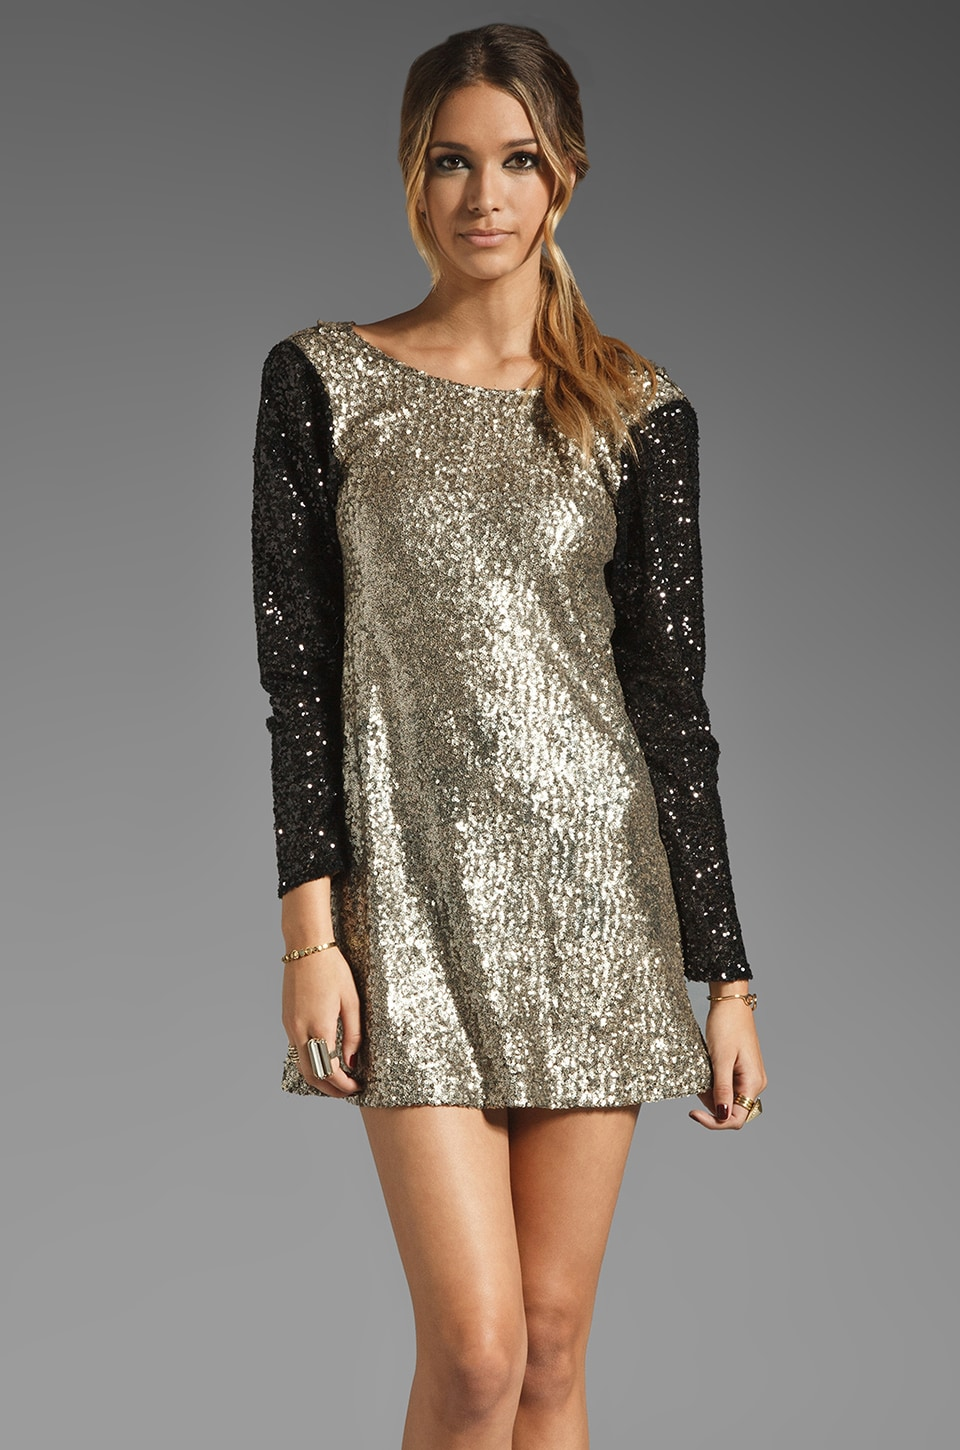 Lovers + Friends Bright Lights Mini Dress in Bronze/Black Sequin